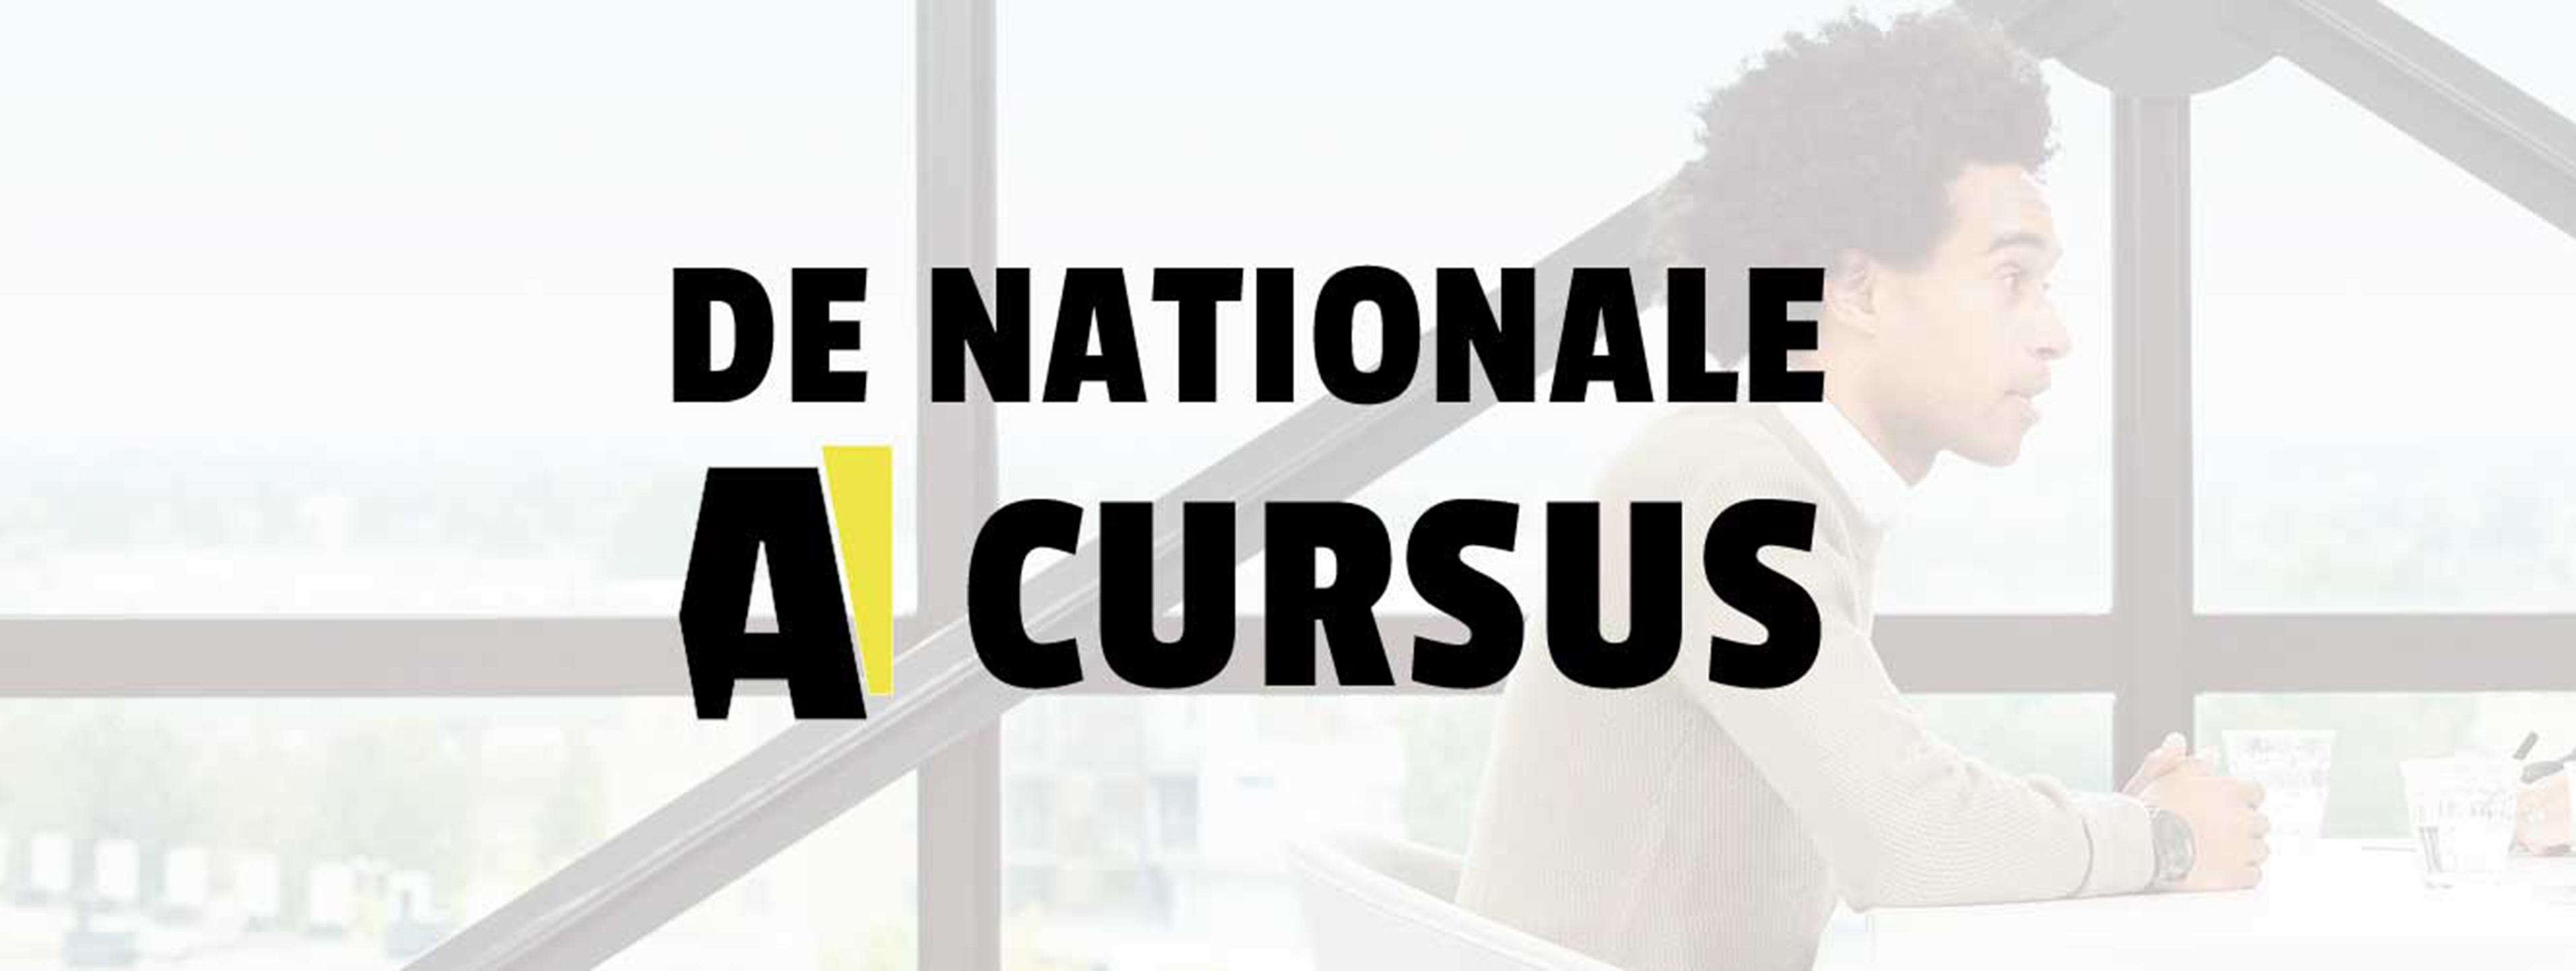 De Nationale AI Cursus